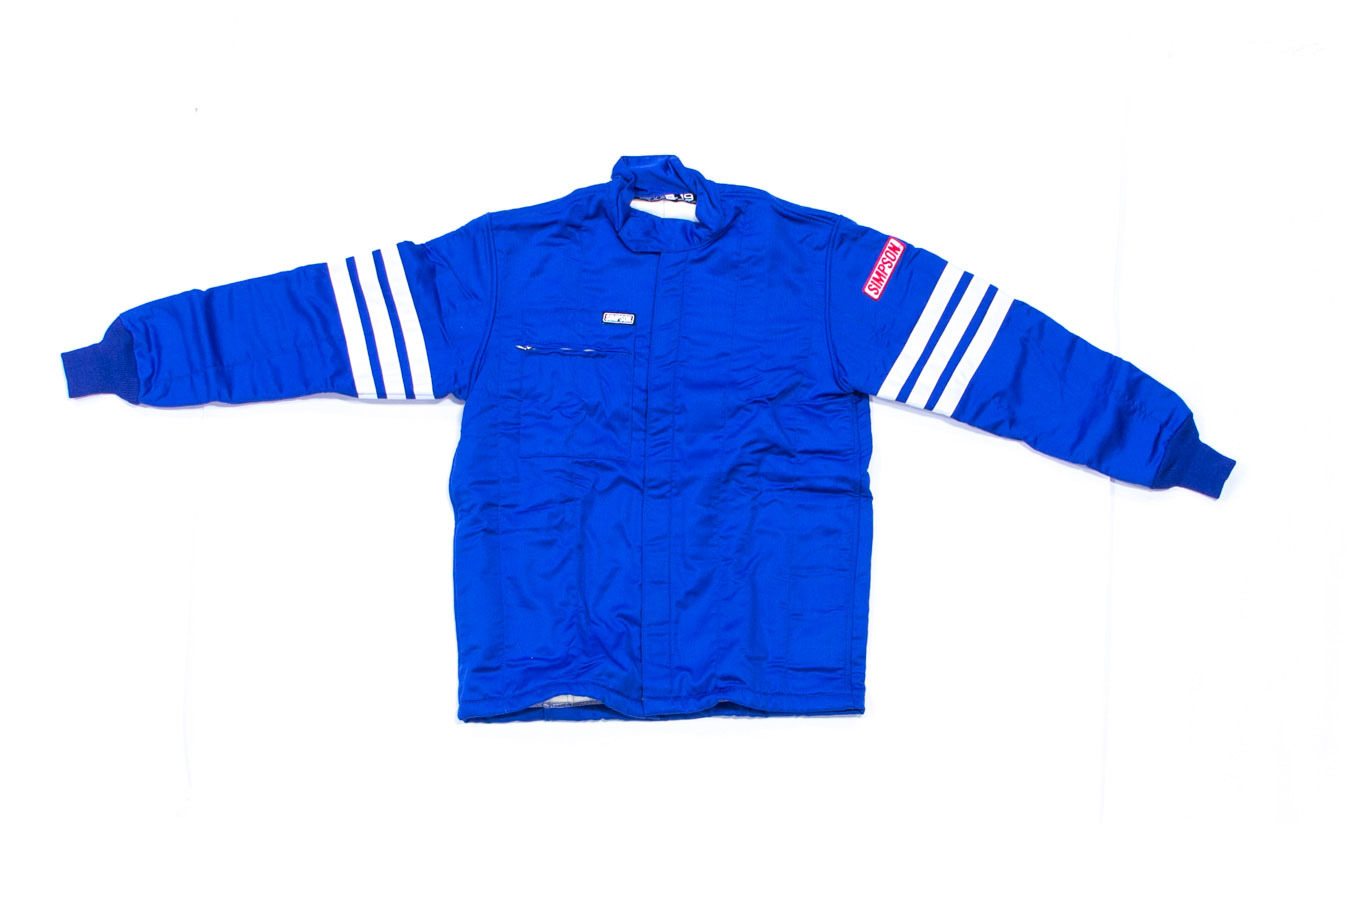 Simpson 0404312 Jacket, Driving, SFI 3.2A/5, Double Layer, Nomex, Blue / White Stripes, Large, Each